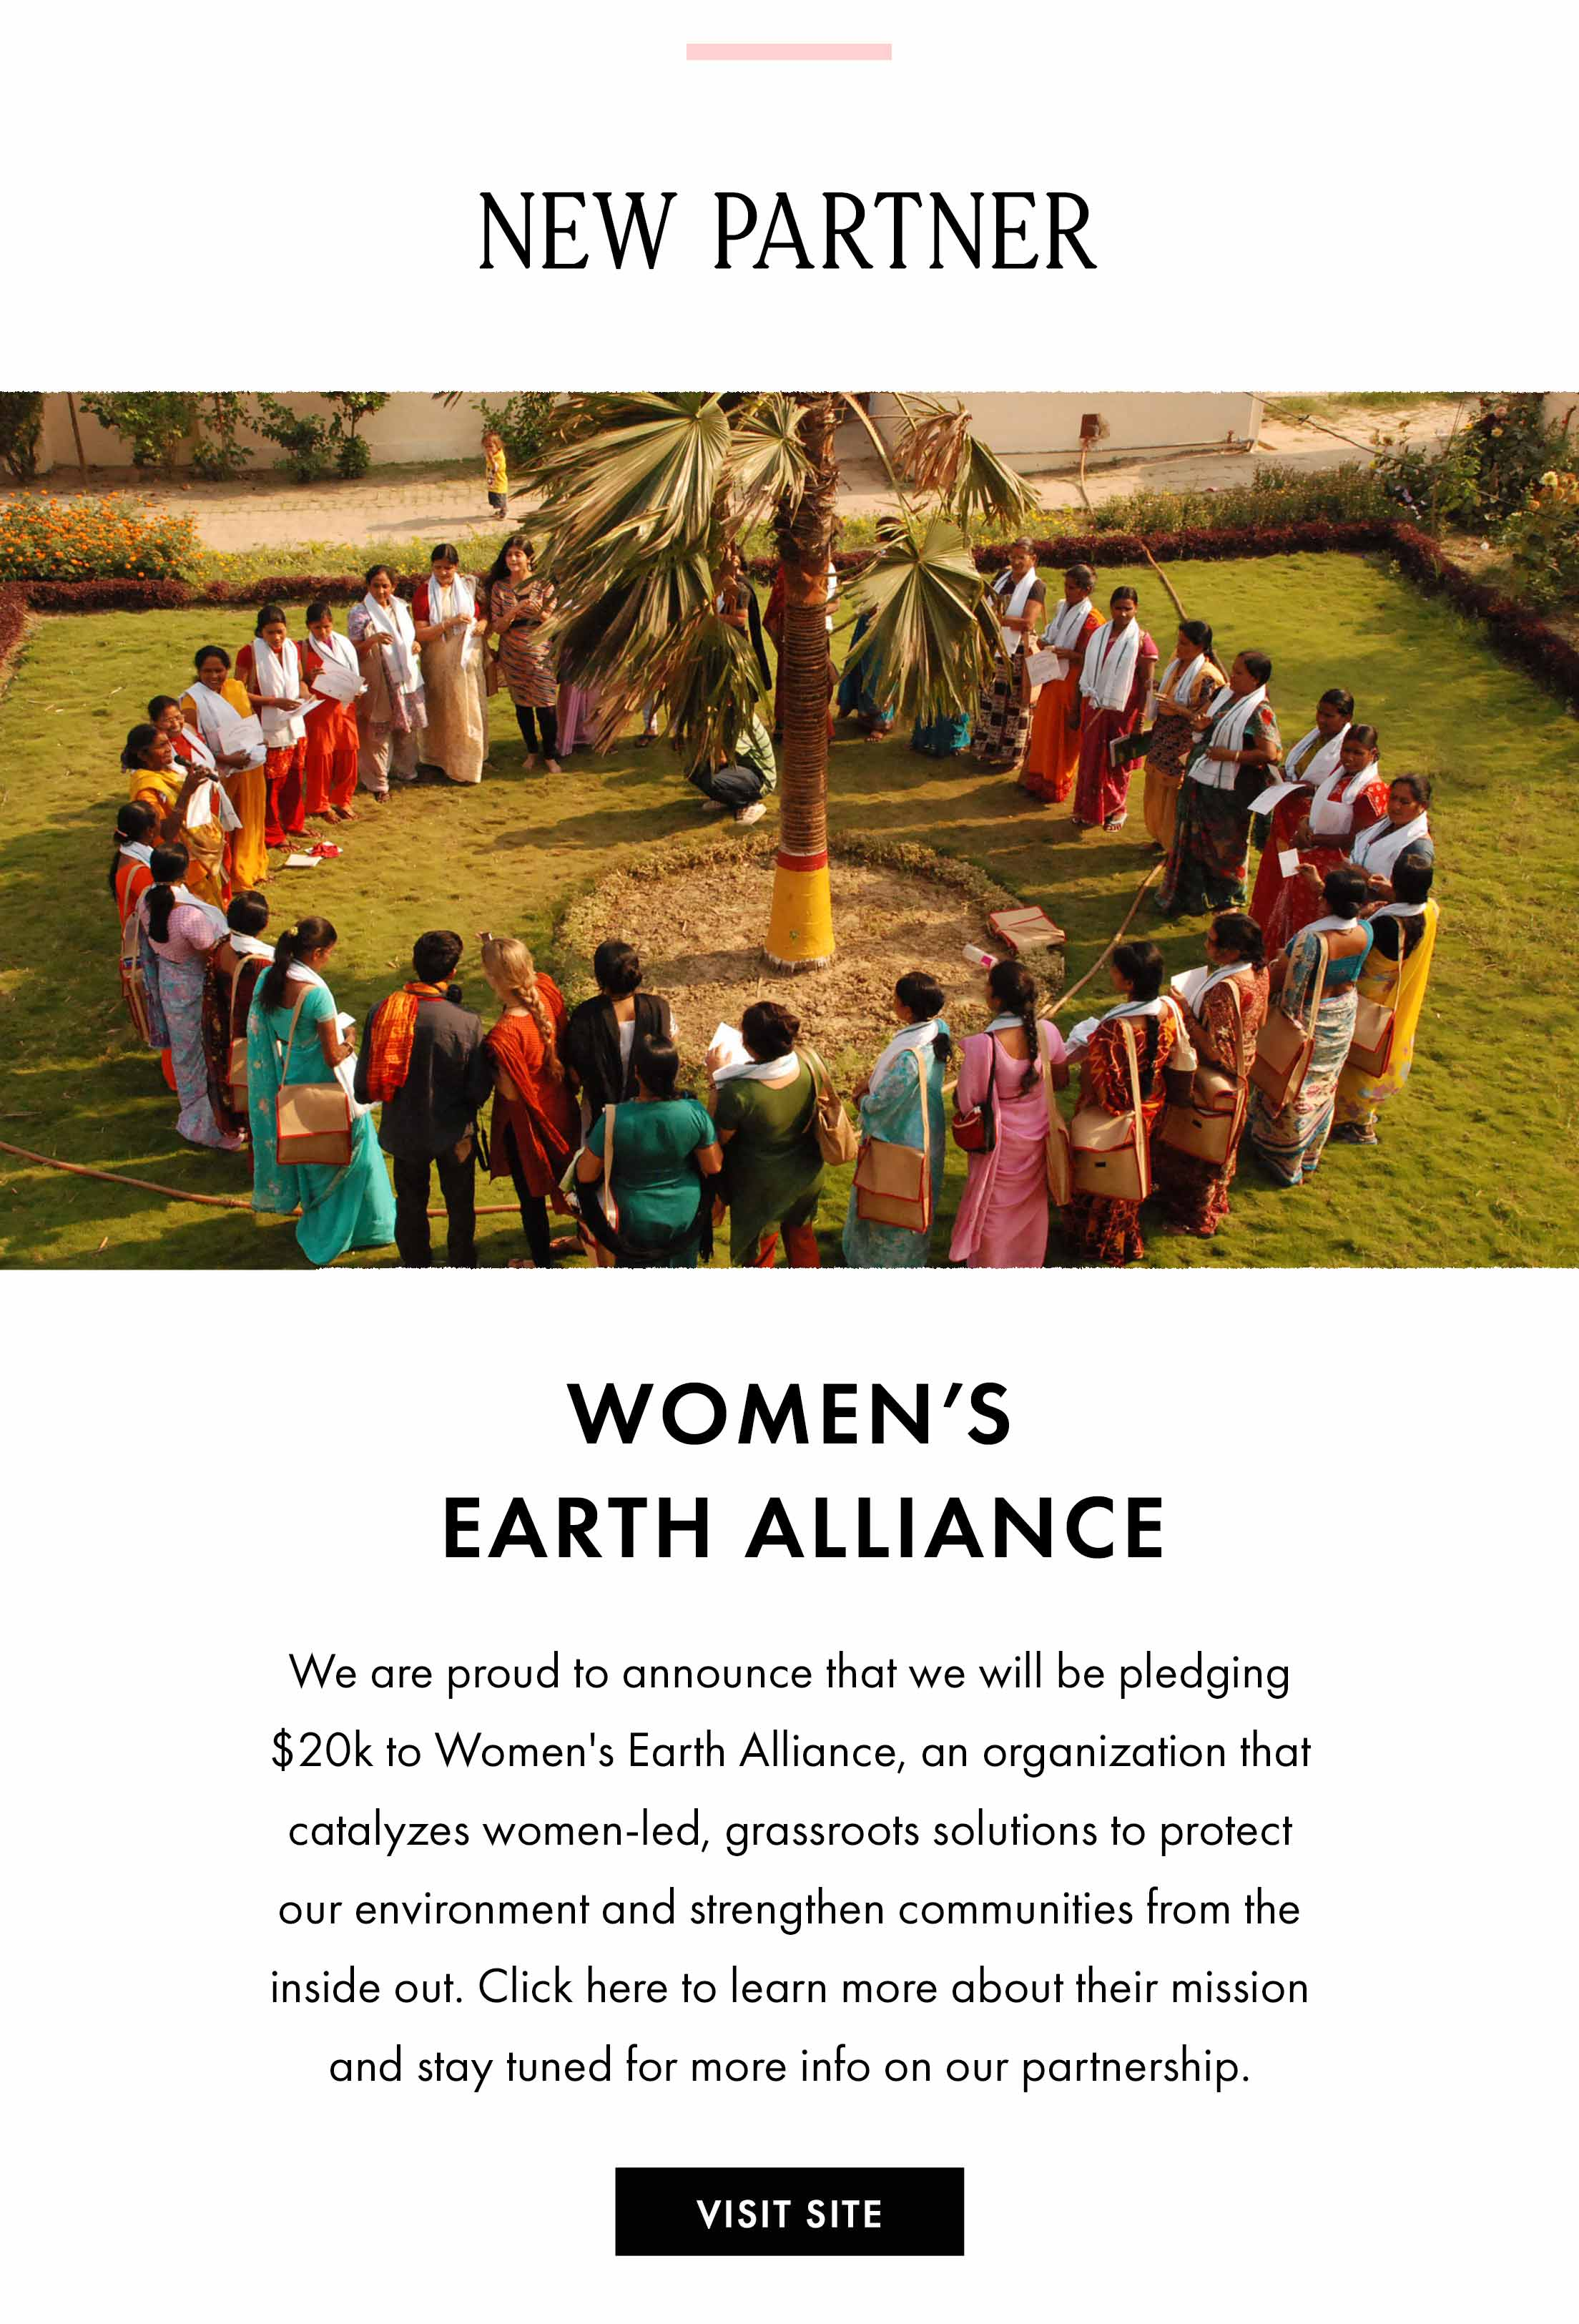 New Partner: Women's Earth Alliance. We are proud to announce that we will be pledging $20k